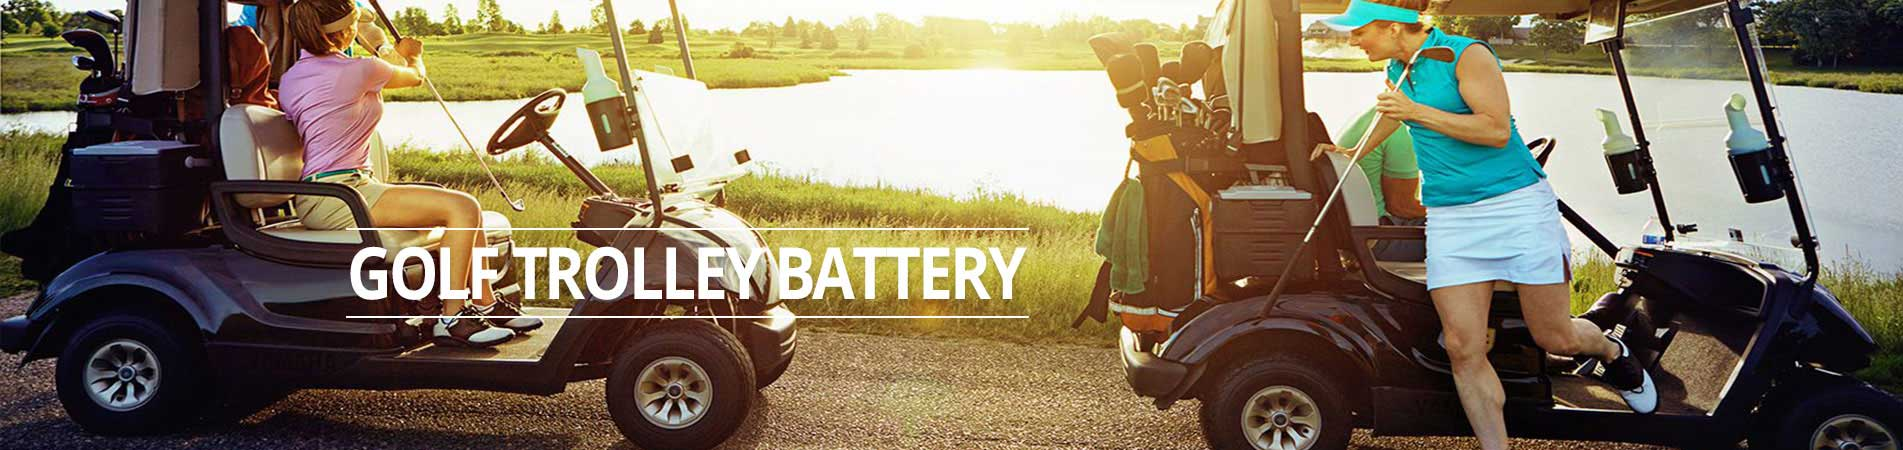 golf trolley battery banner